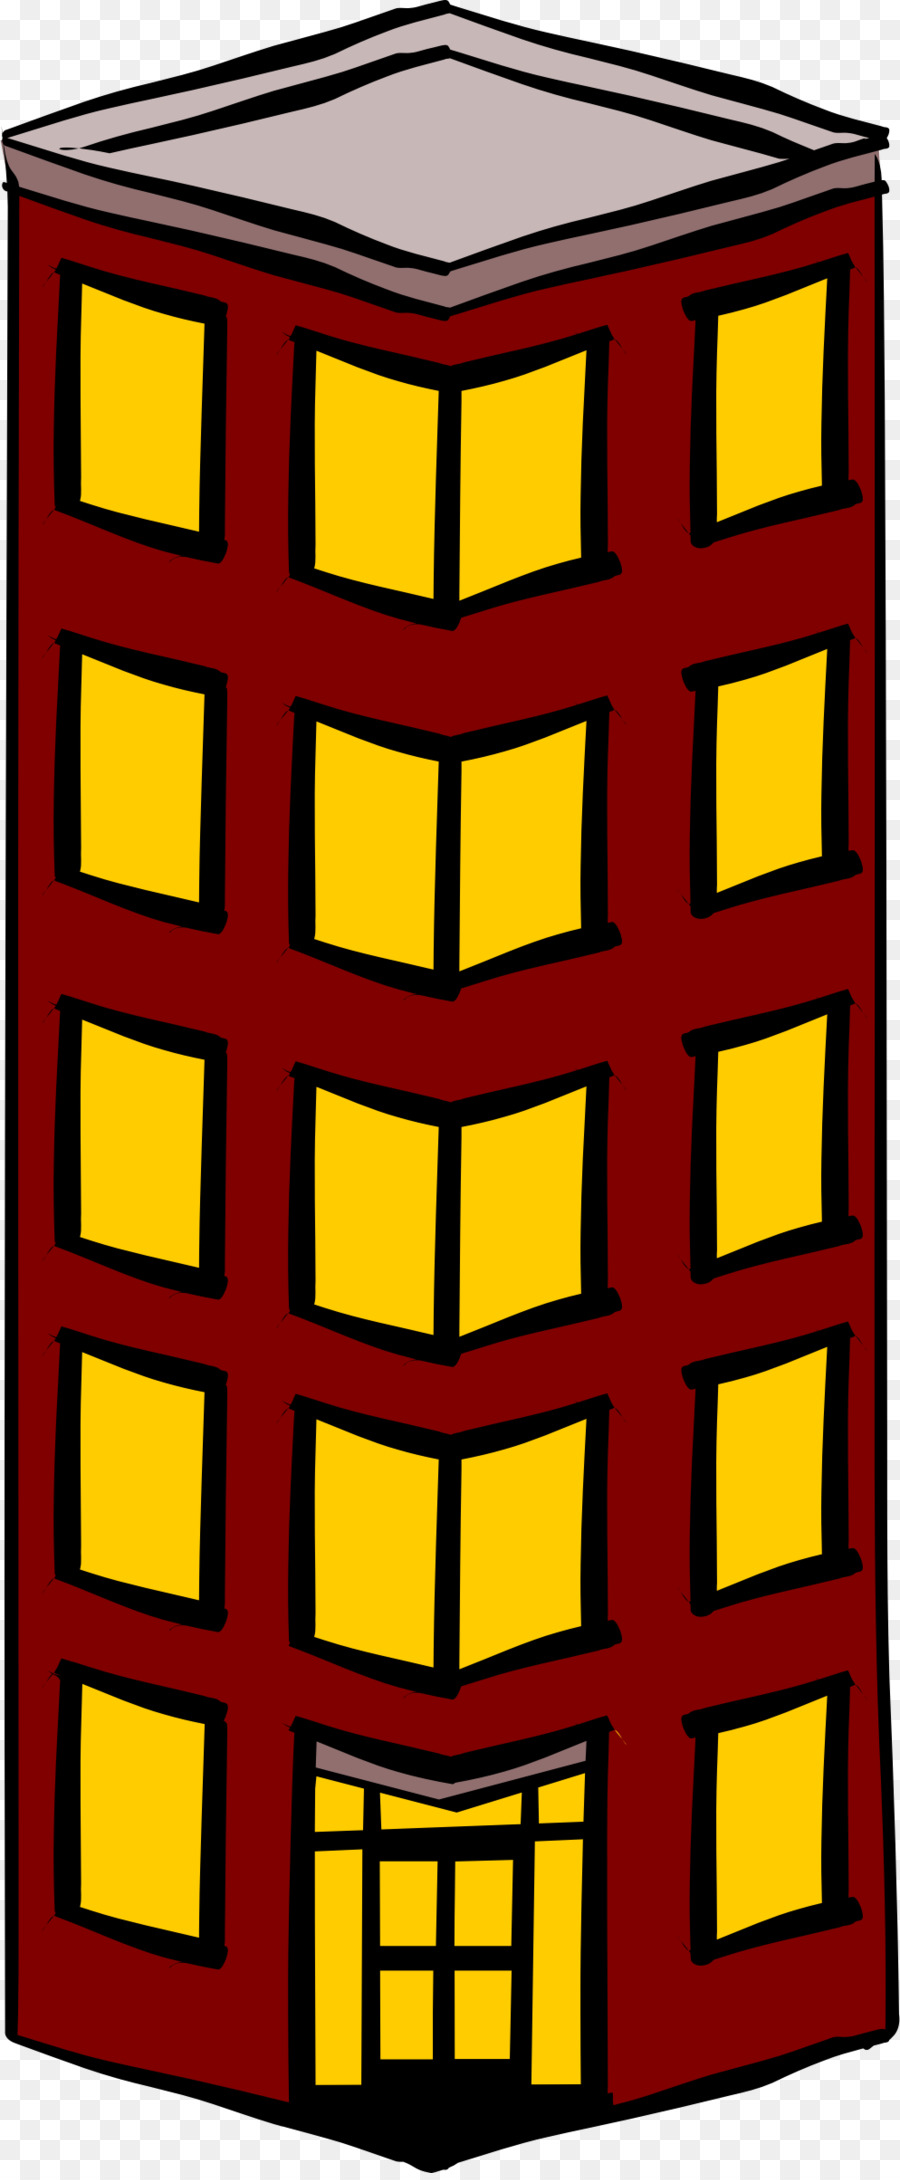 Tall biulding clipart graphic stock Building Cartoon clipart - Building, Yellow, Line ... graphic stock